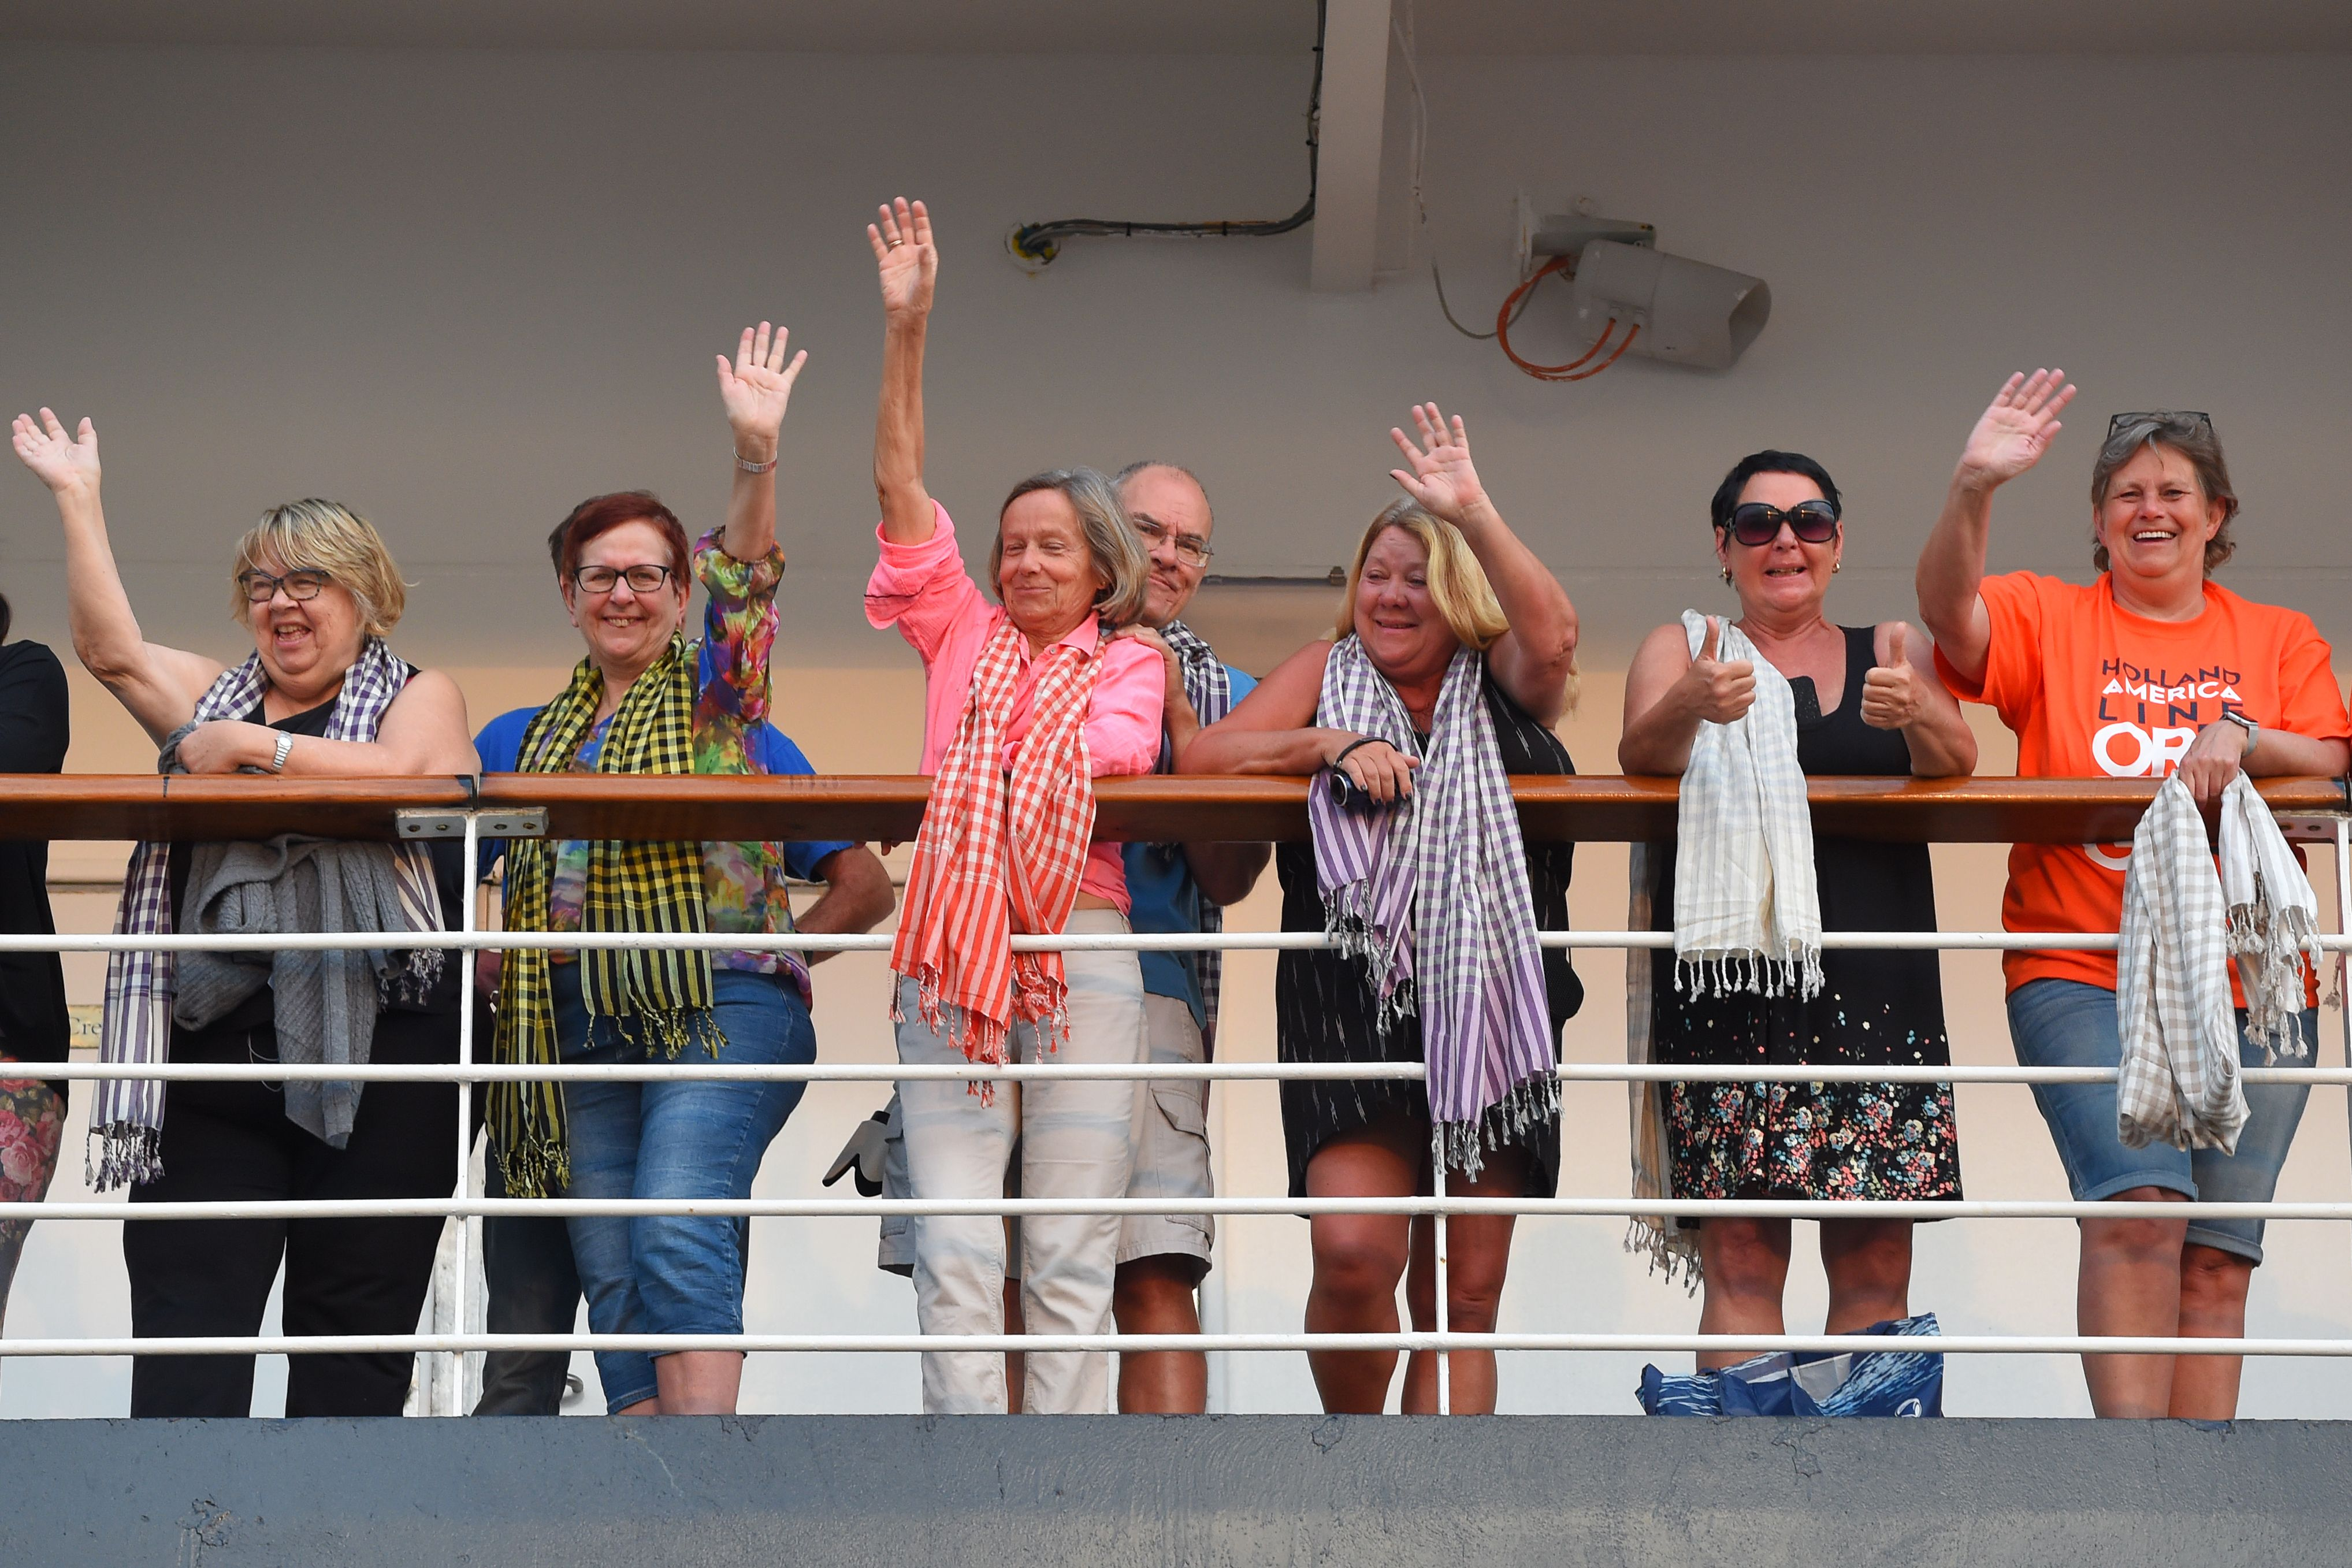 Passengers on board the Westerdam cruise ship wave in Sihanoukville, Cambodia on February 14.